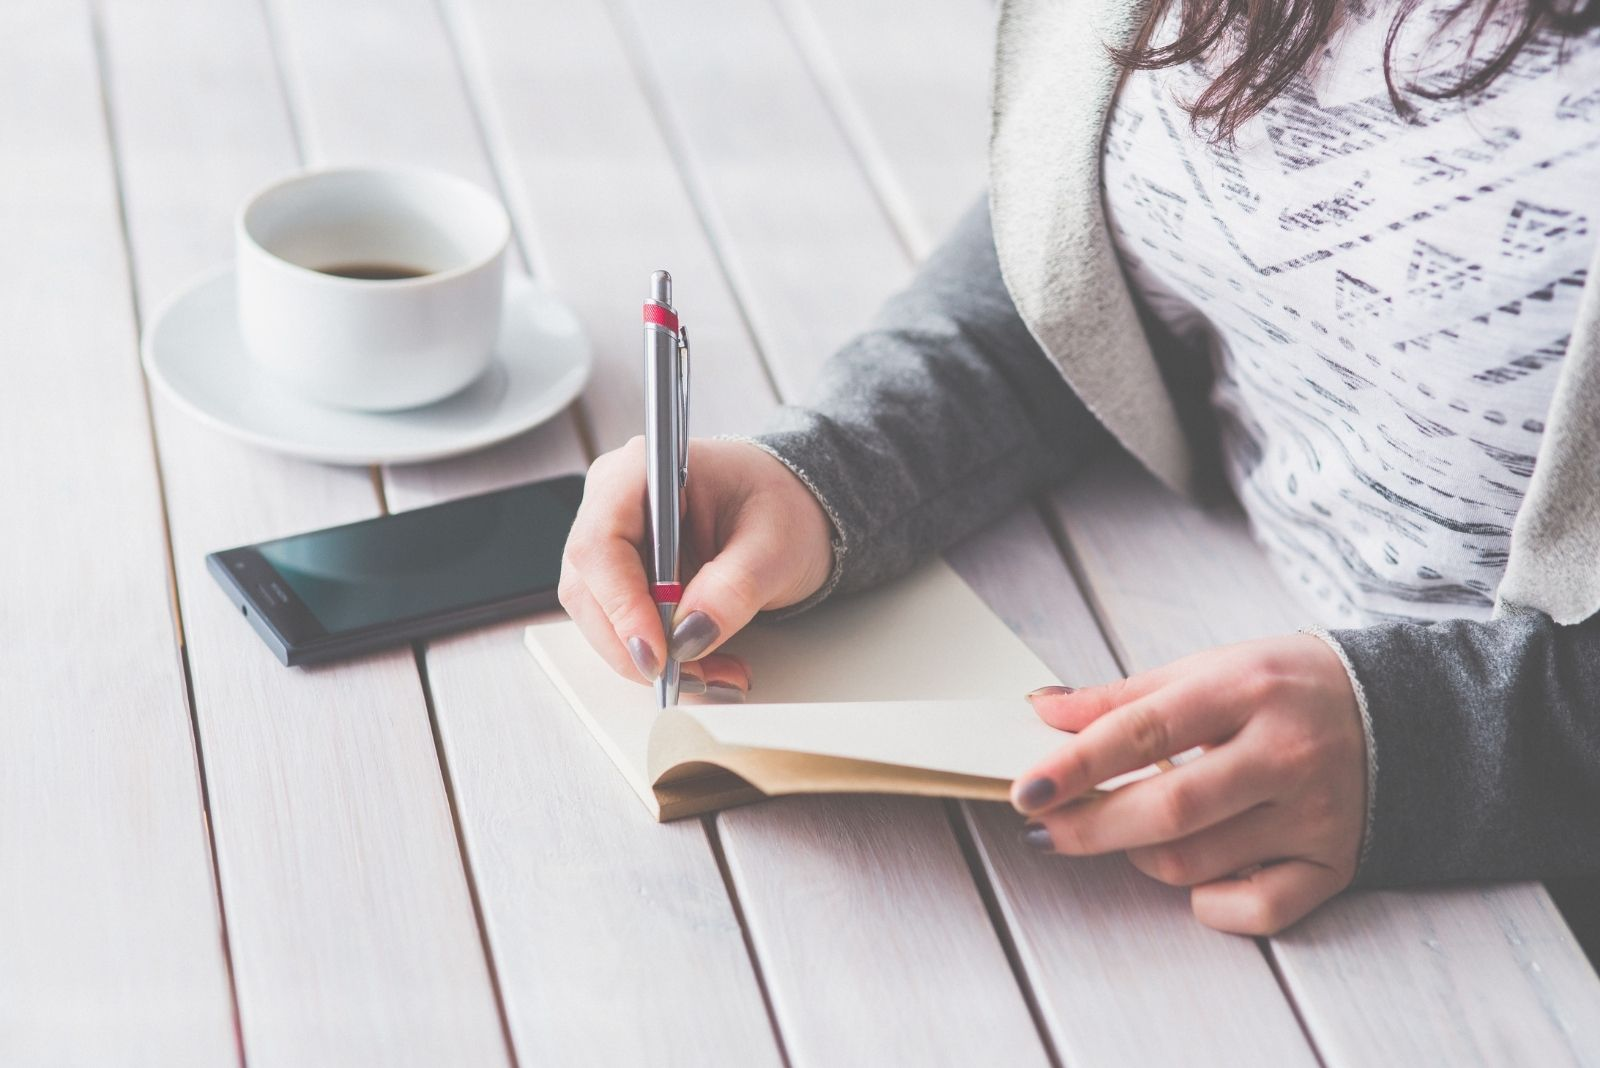 woman writing on her journal on a wooden table with phone and coffee on the table in cropped image